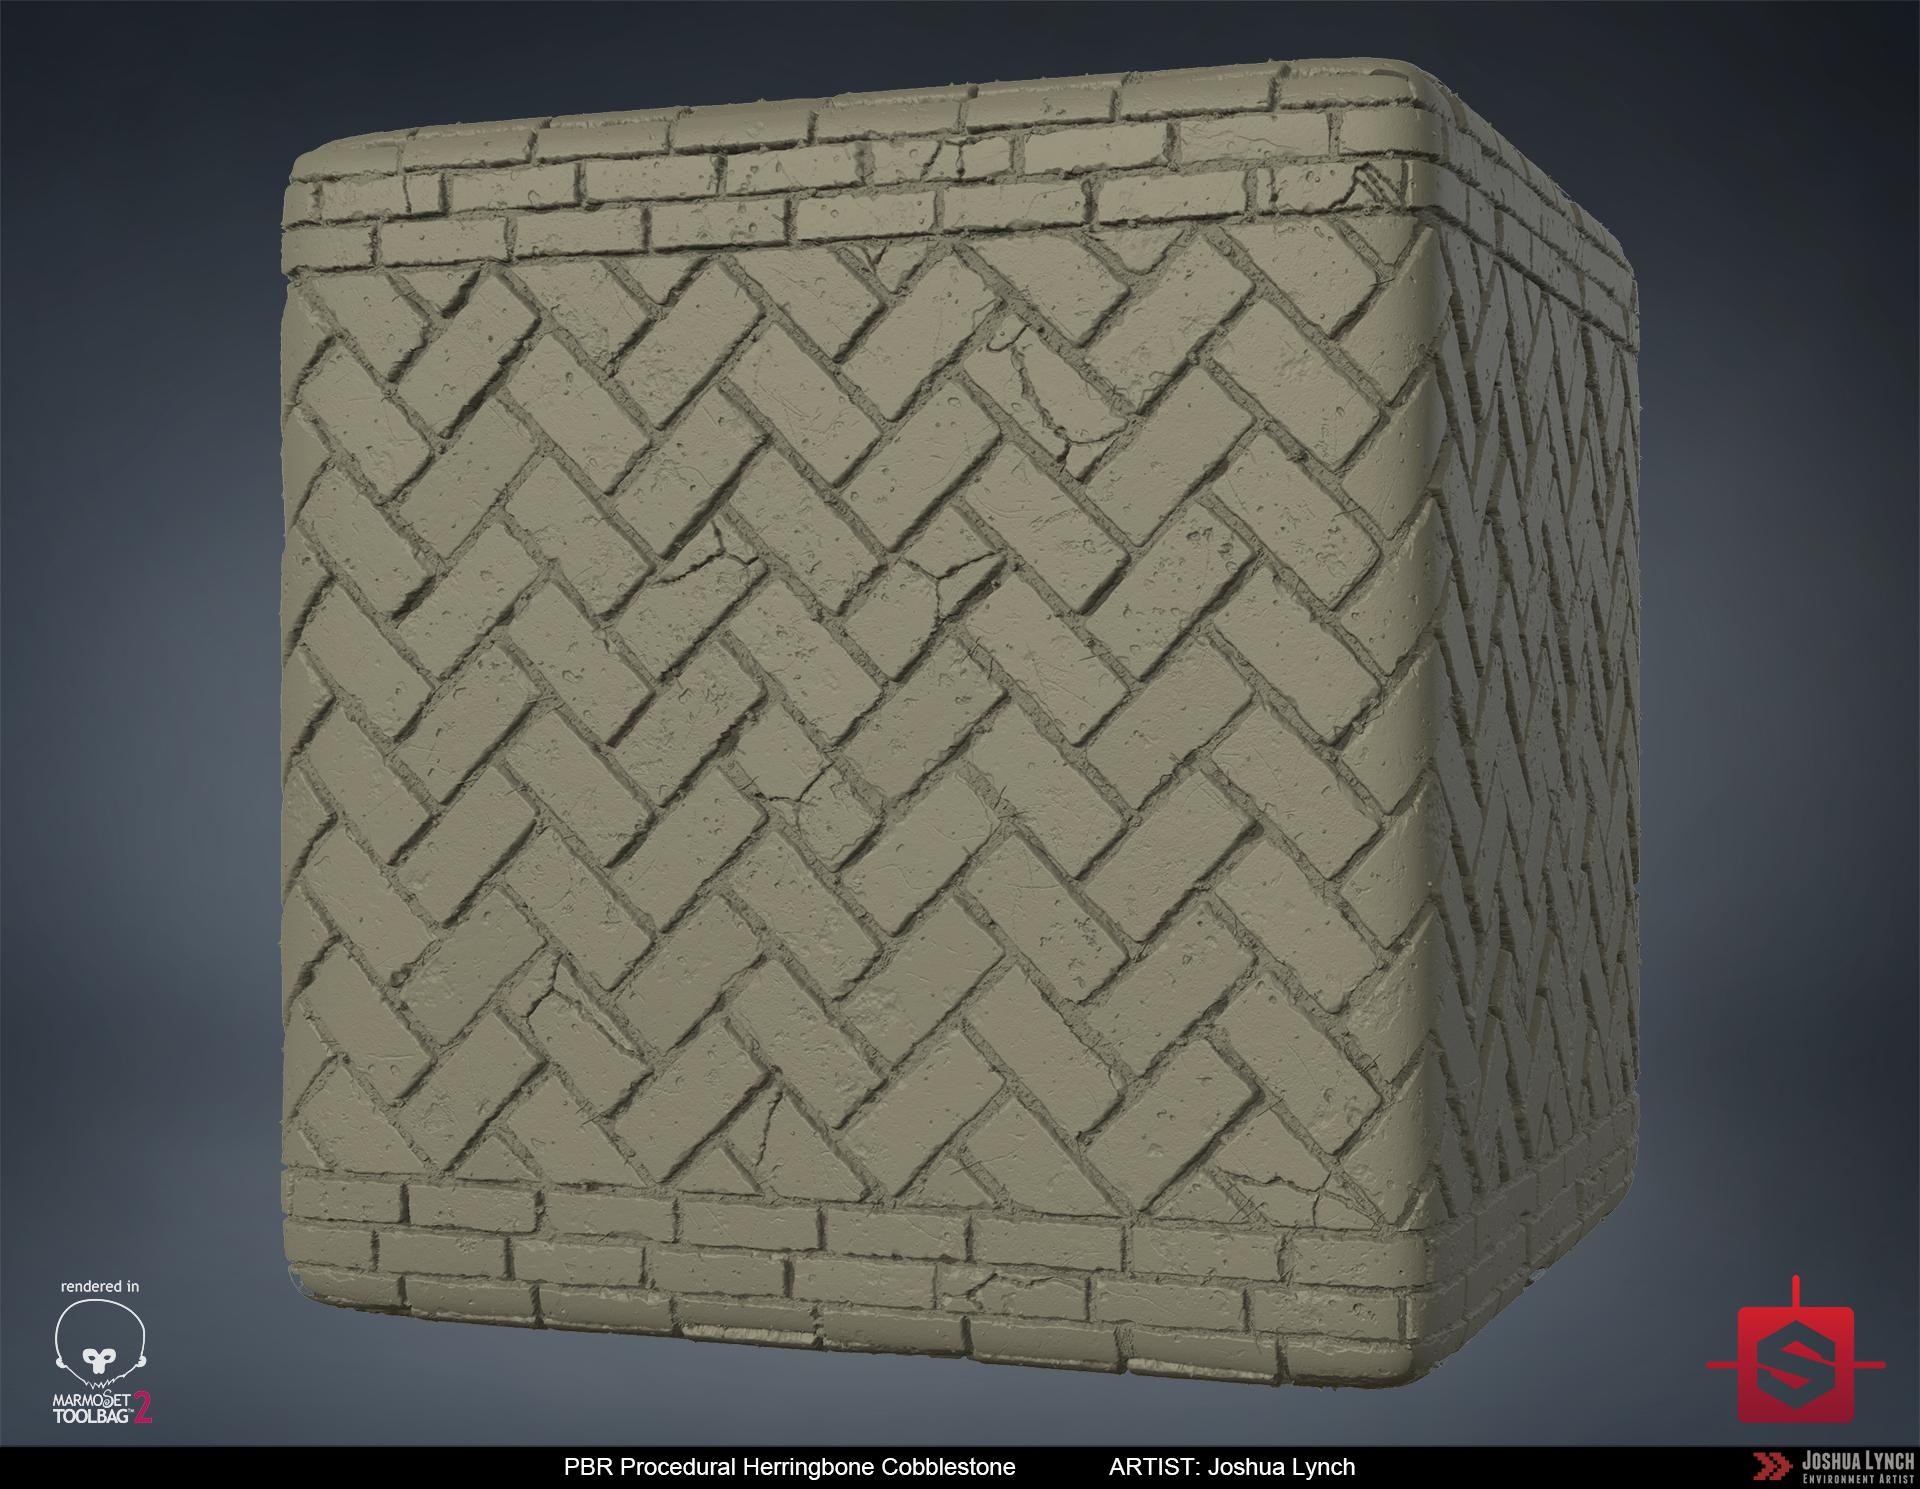 Floor_Cobblestone_Herringbone_Cube_Rev_01_Layout_Comp_Josh_Lynch.png